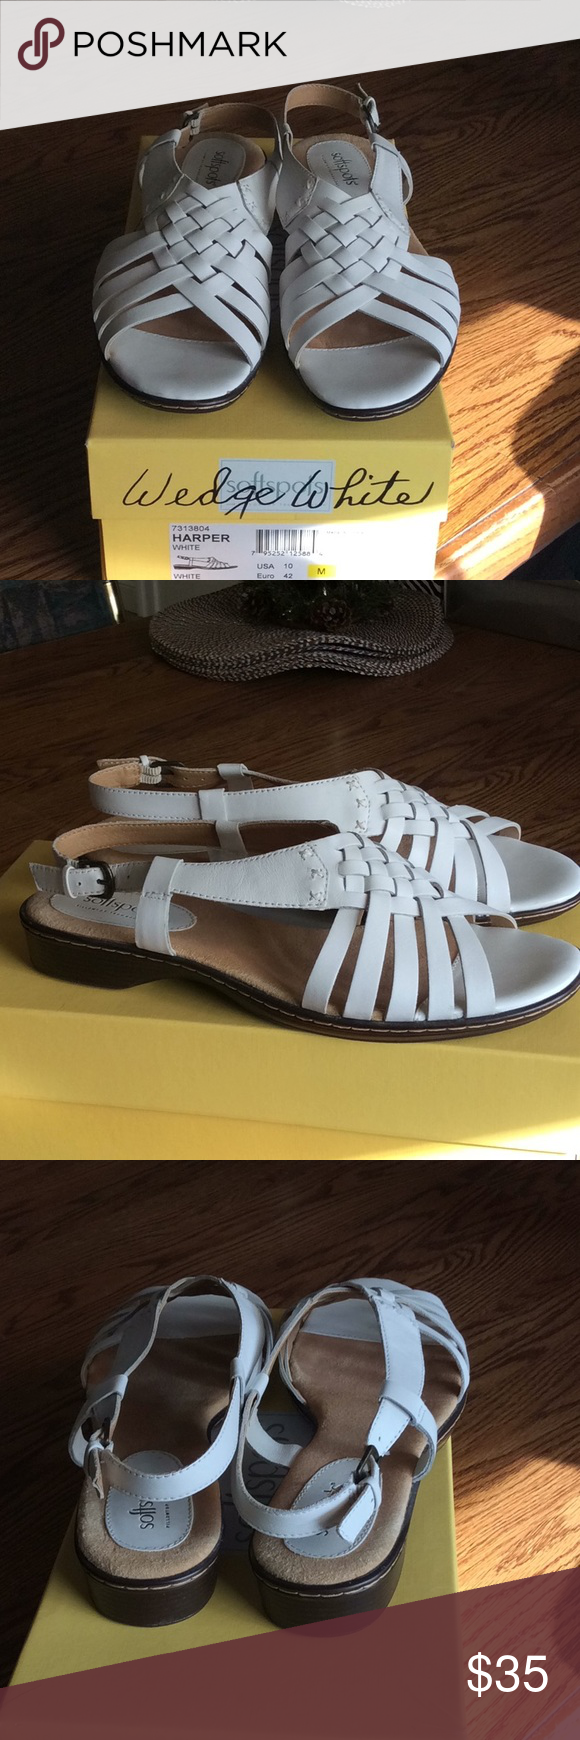 7e2fff8bc4 Never worn sandals White sandals Soft spots softspots Shoes Sandals